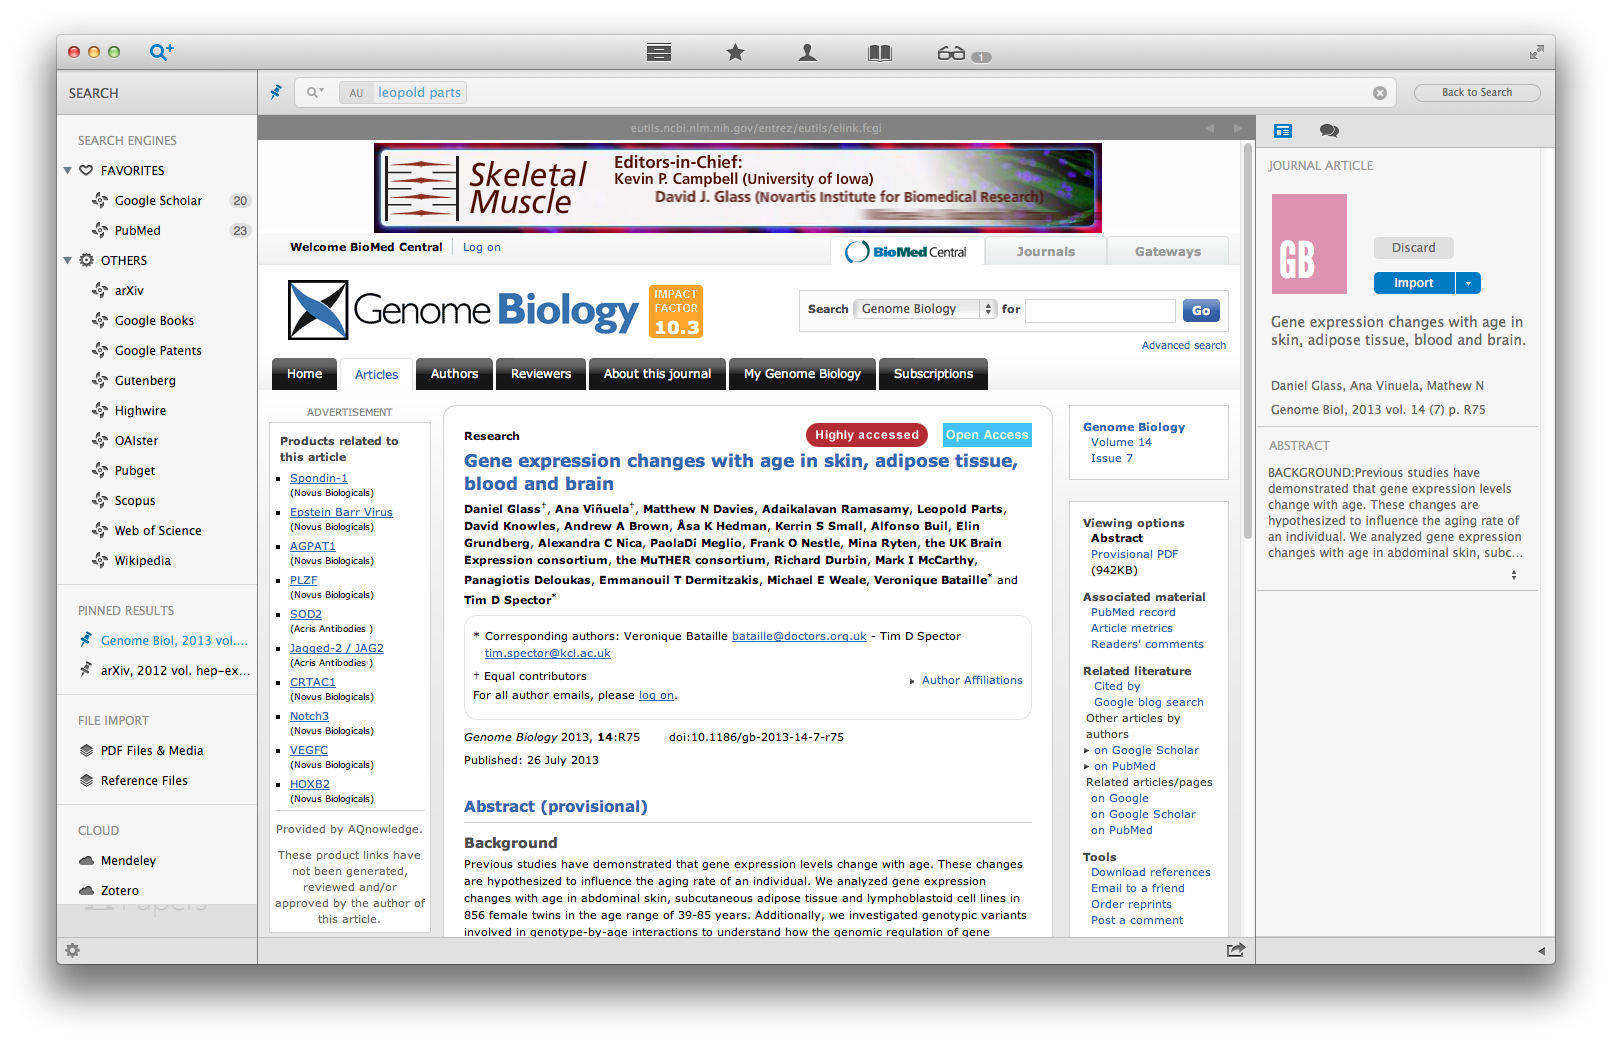 How to search for new publications in Papers 3 for Mac :